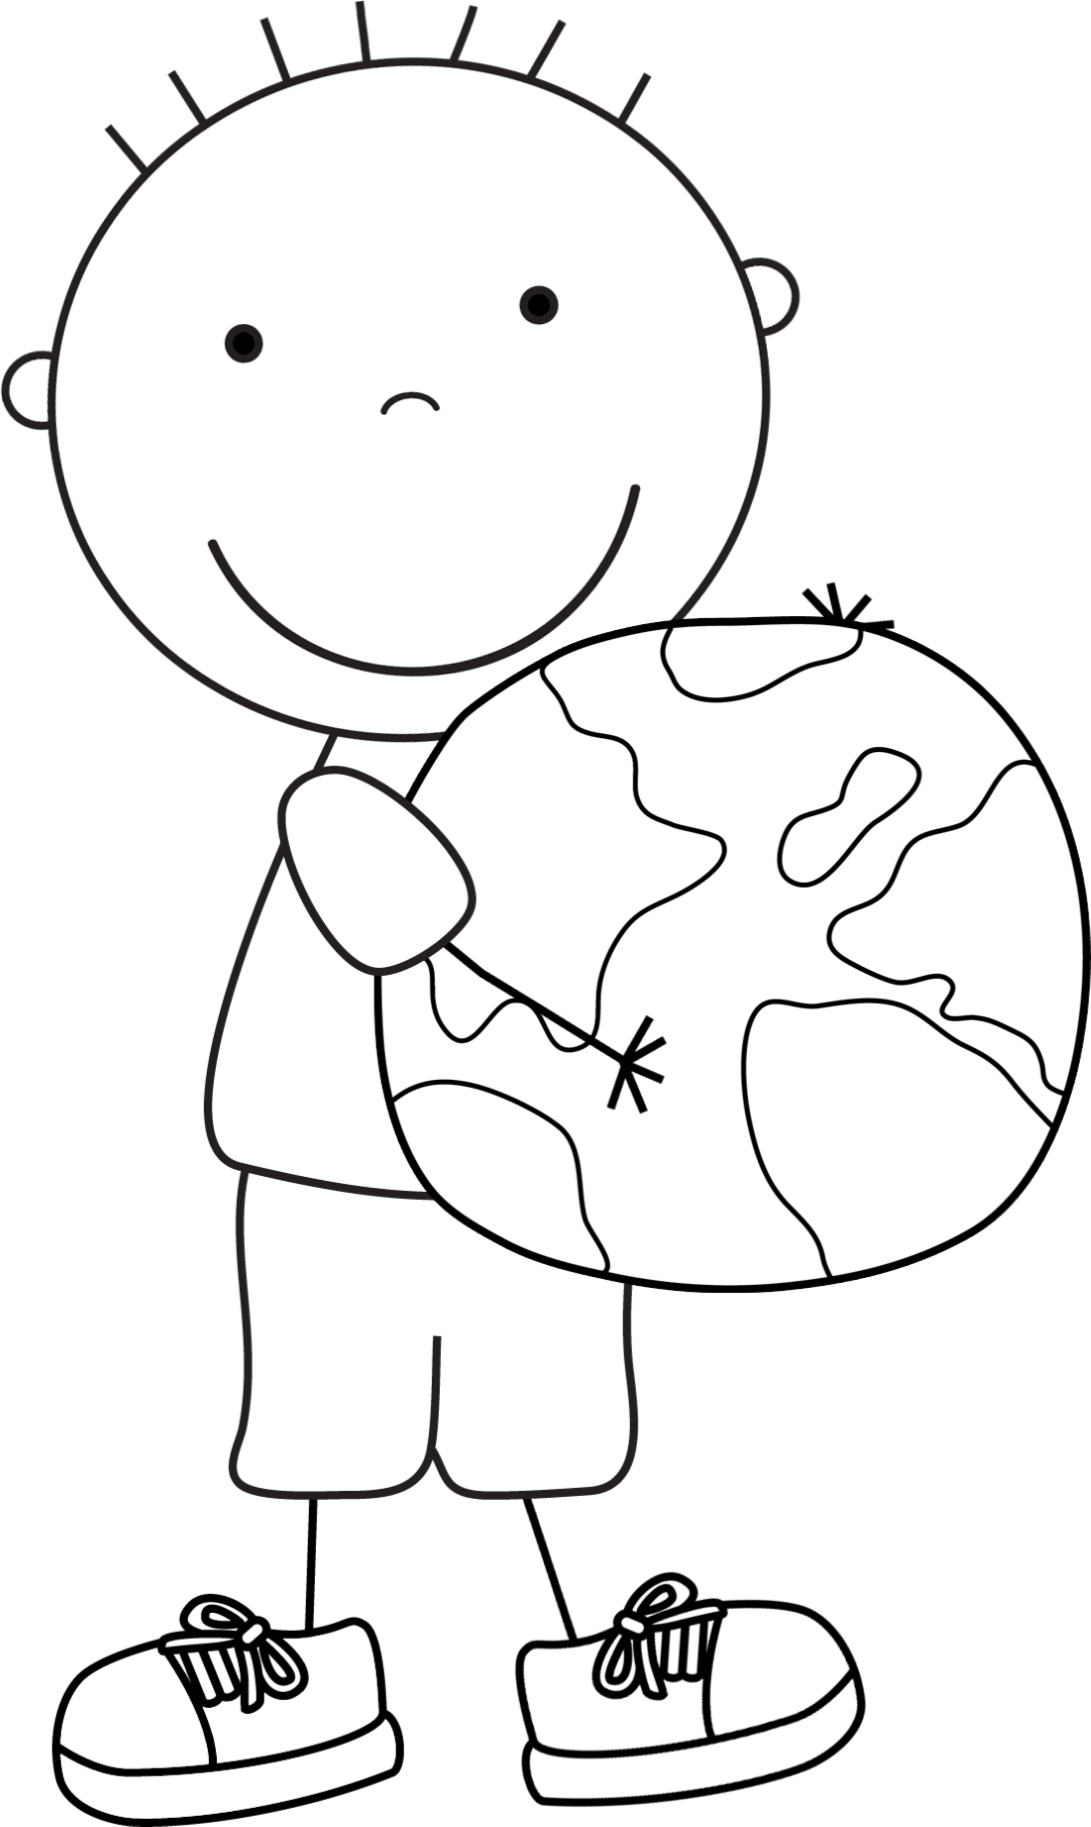 campbells soup coloring pages - photo#30